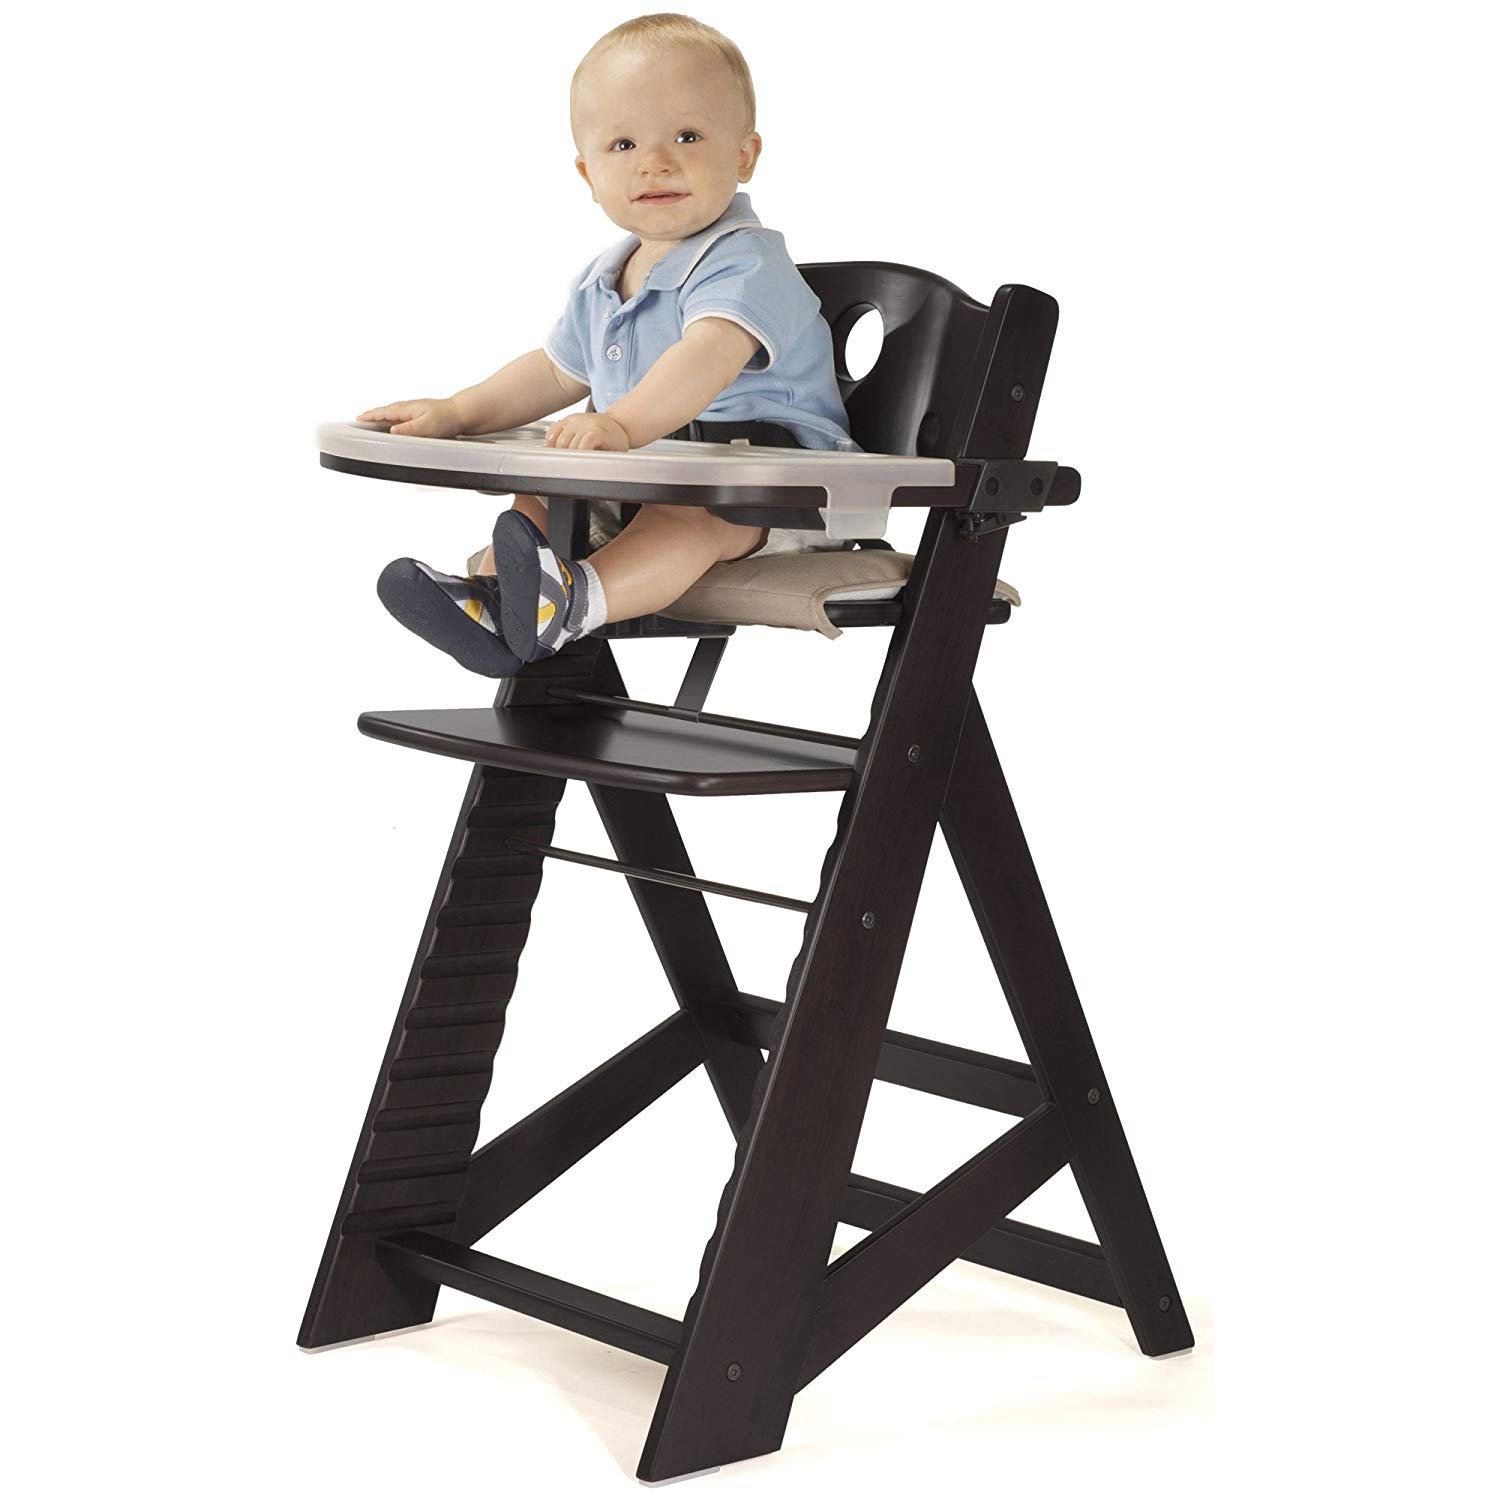 keekaroo high chair image